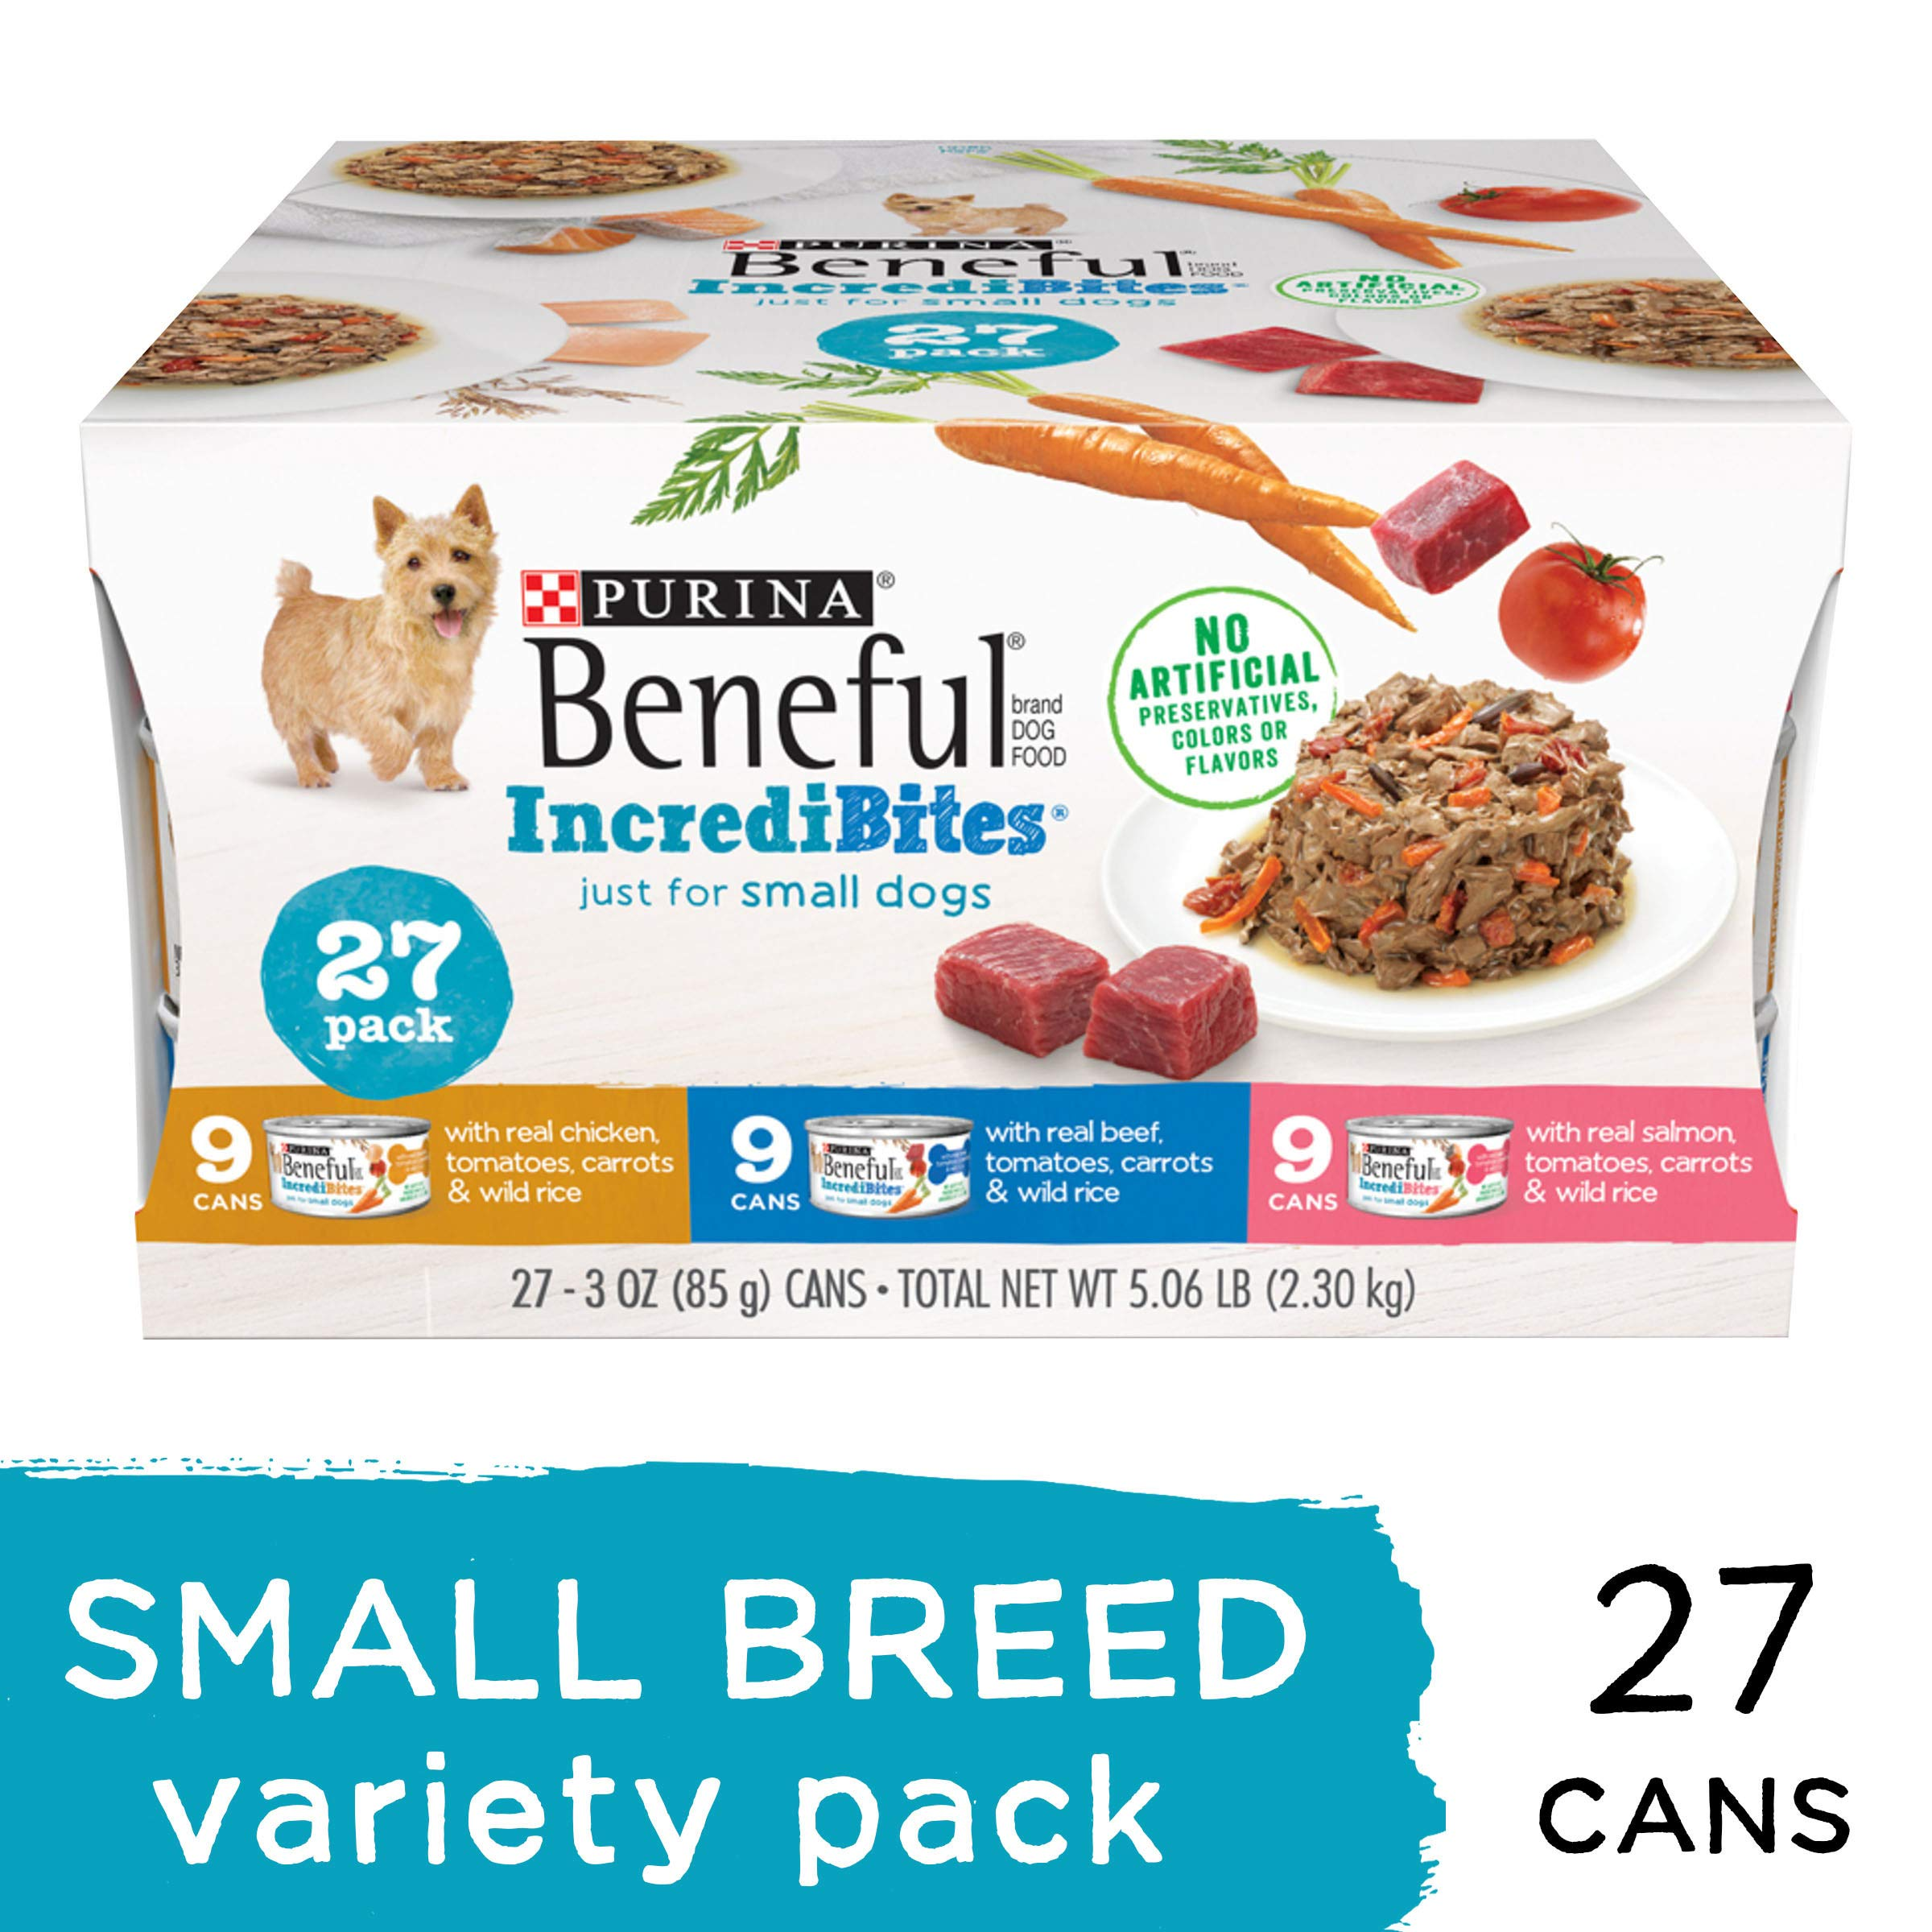 Purina Beneful Small Breed Wet Dog Food Variety Pack, IncrediBites - (27) 3 oz. Cans by Purina Beneful